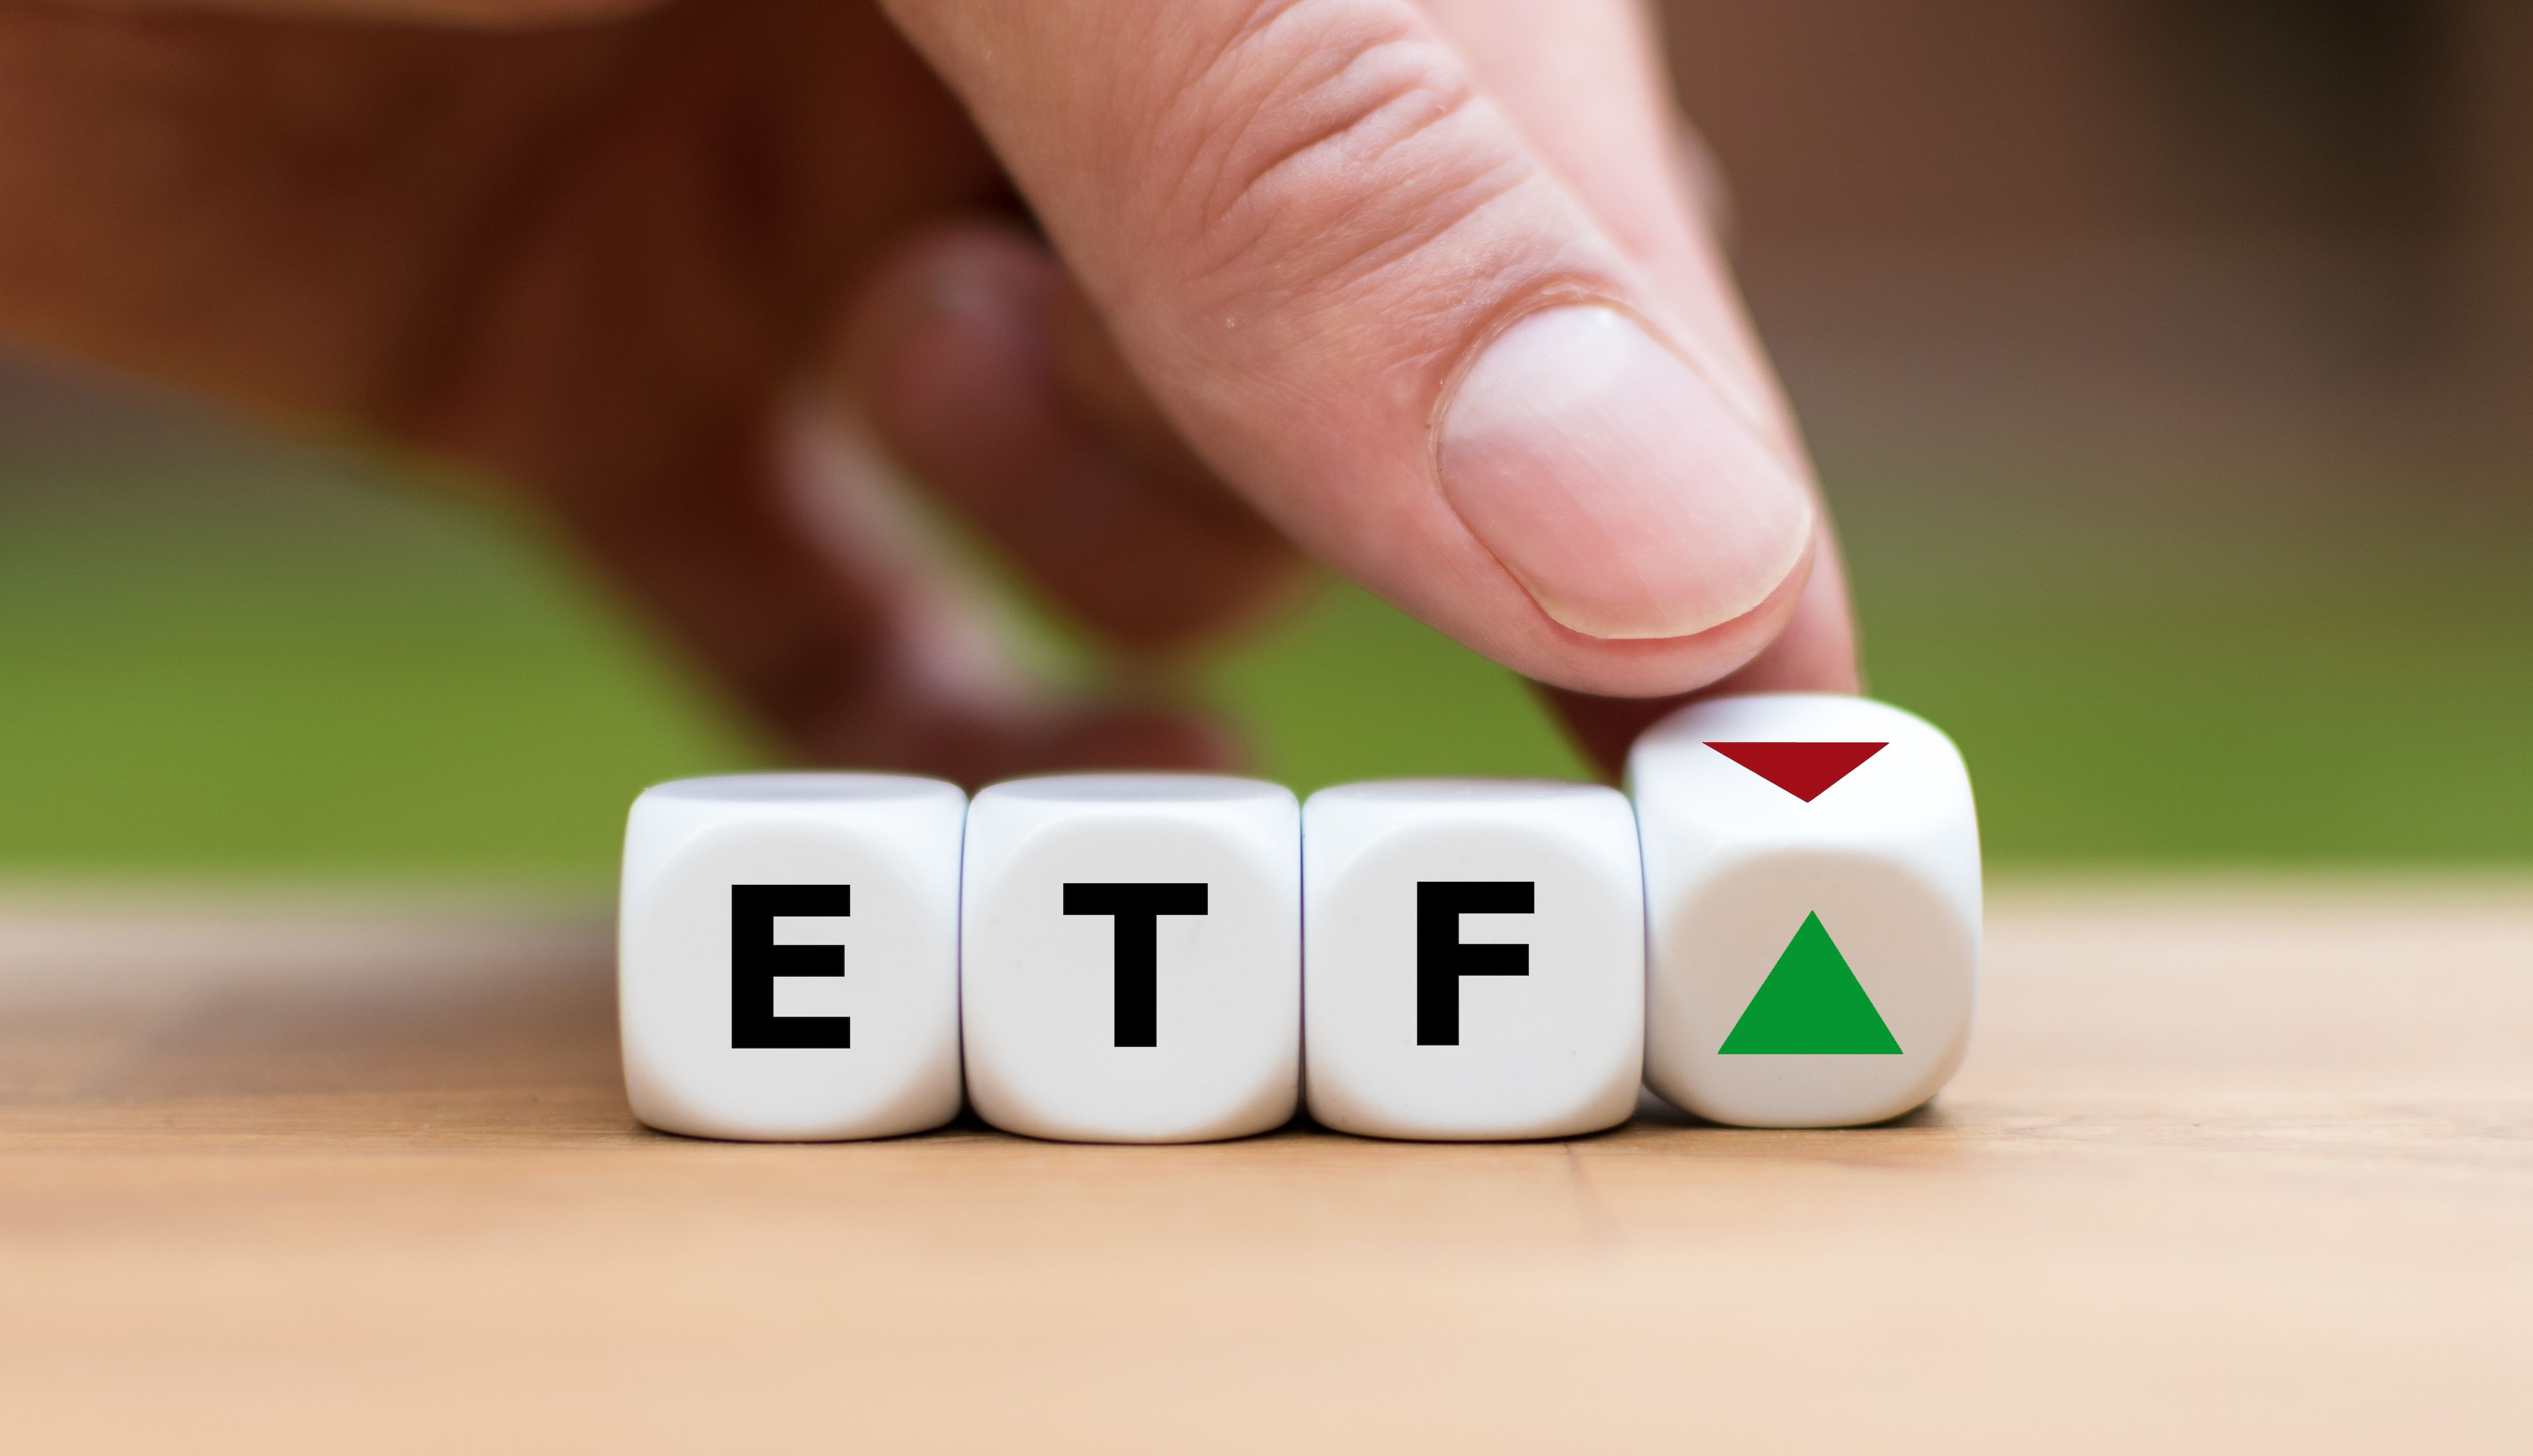 Small caps are expected to outperform in 2020. Here are five ETFs for investors making that bet